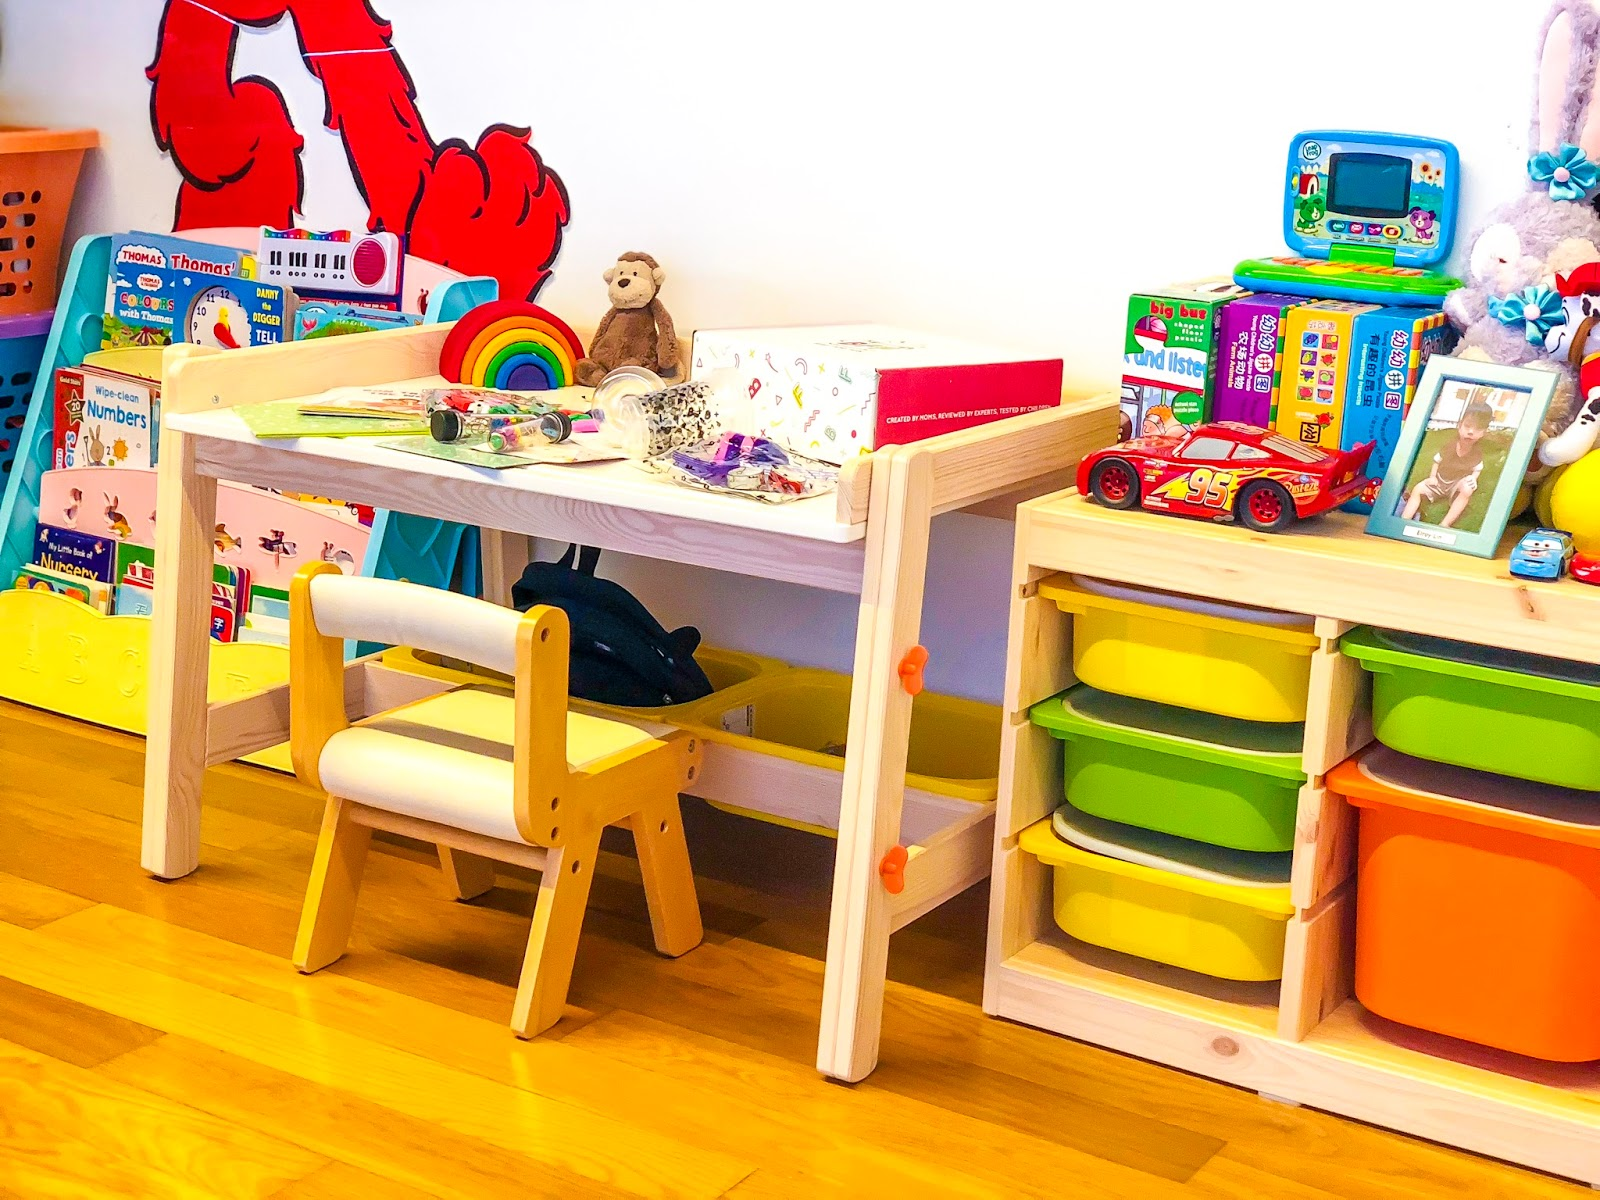 Ikea Play Area Elroy S Play Area New Flisat Table From Ikea Bag For Fun Bff